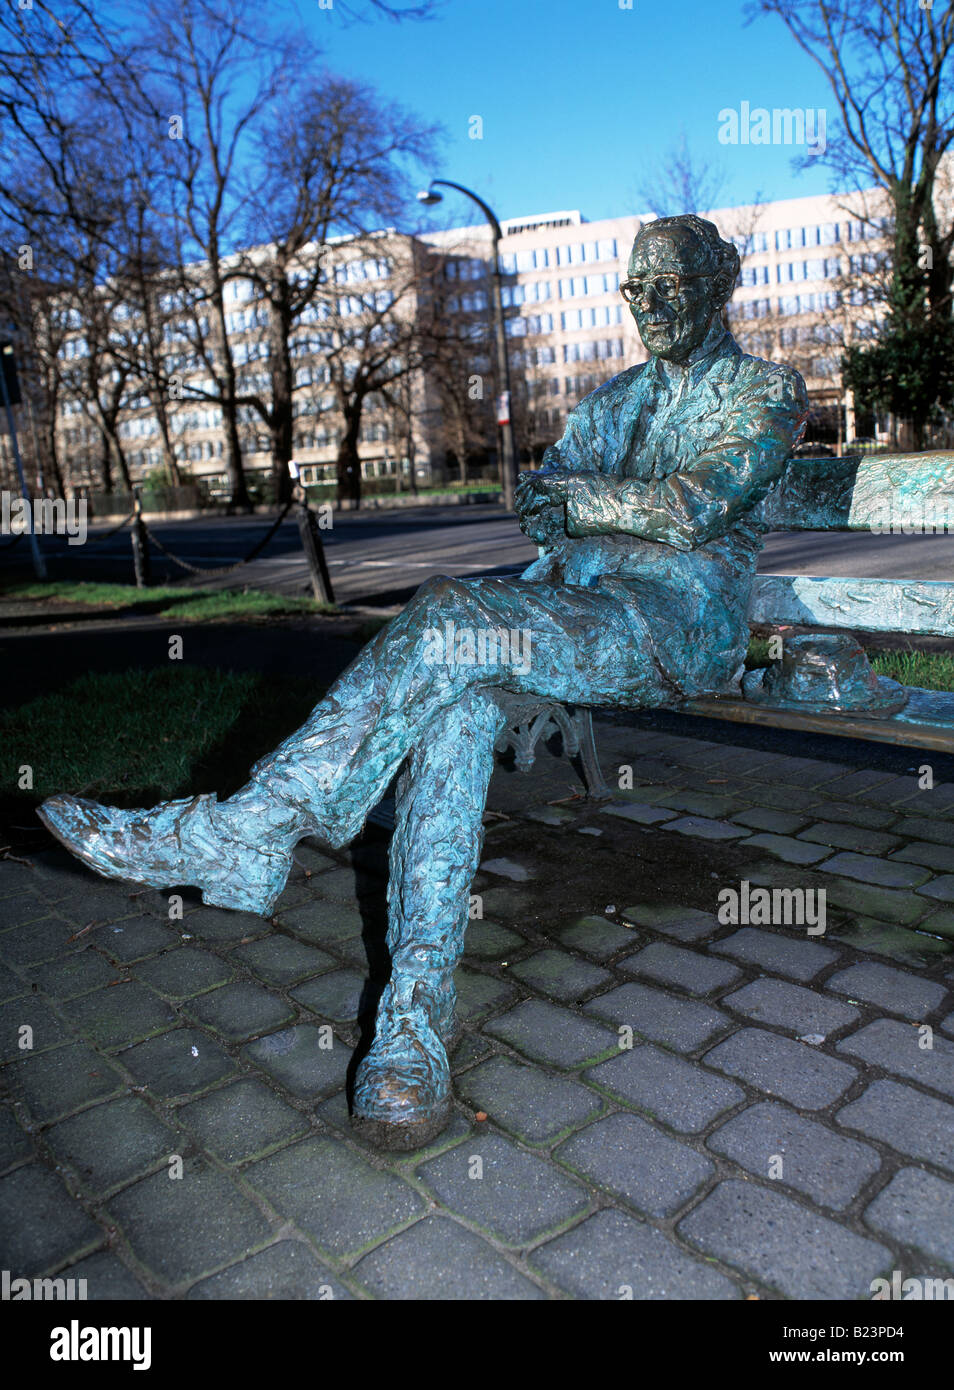 street side sculpture of one of irelands famous poets, - Stock Image